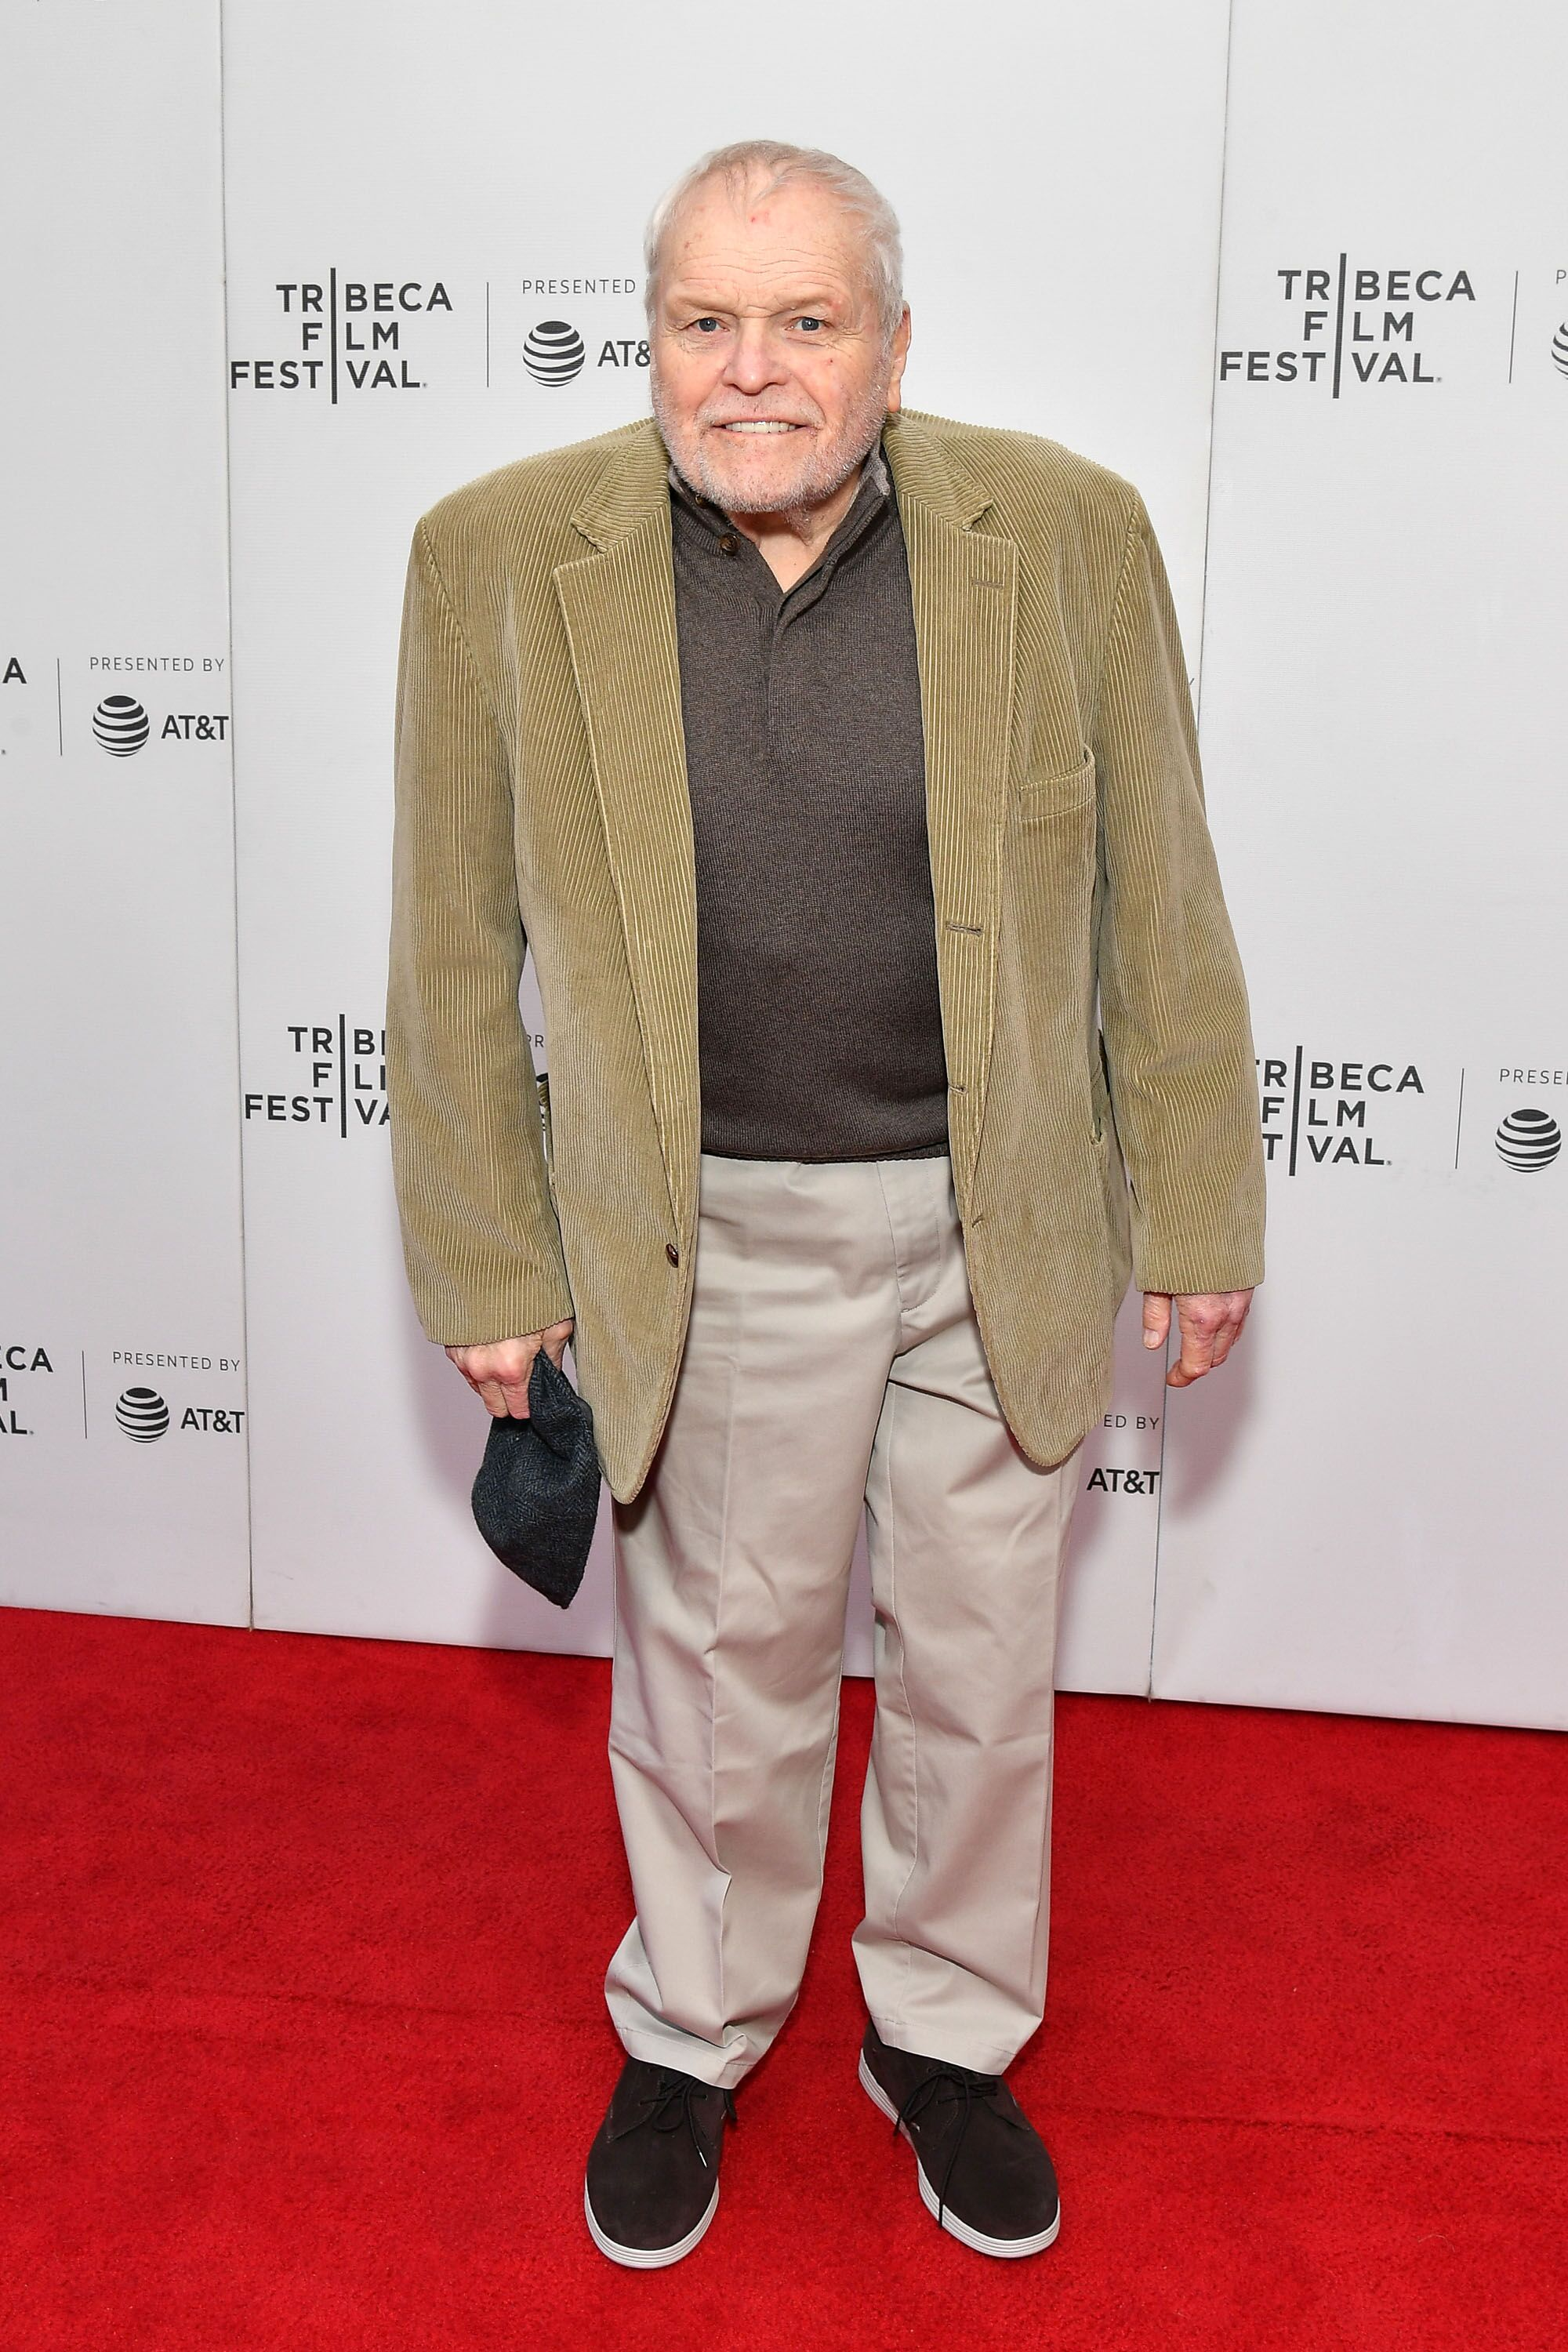 """Brian Dennehy attends the """"Driveways"""" screening during the 2019 Tribeca Film Festival at Village East Cinema on April 30, 2019 in New York City 